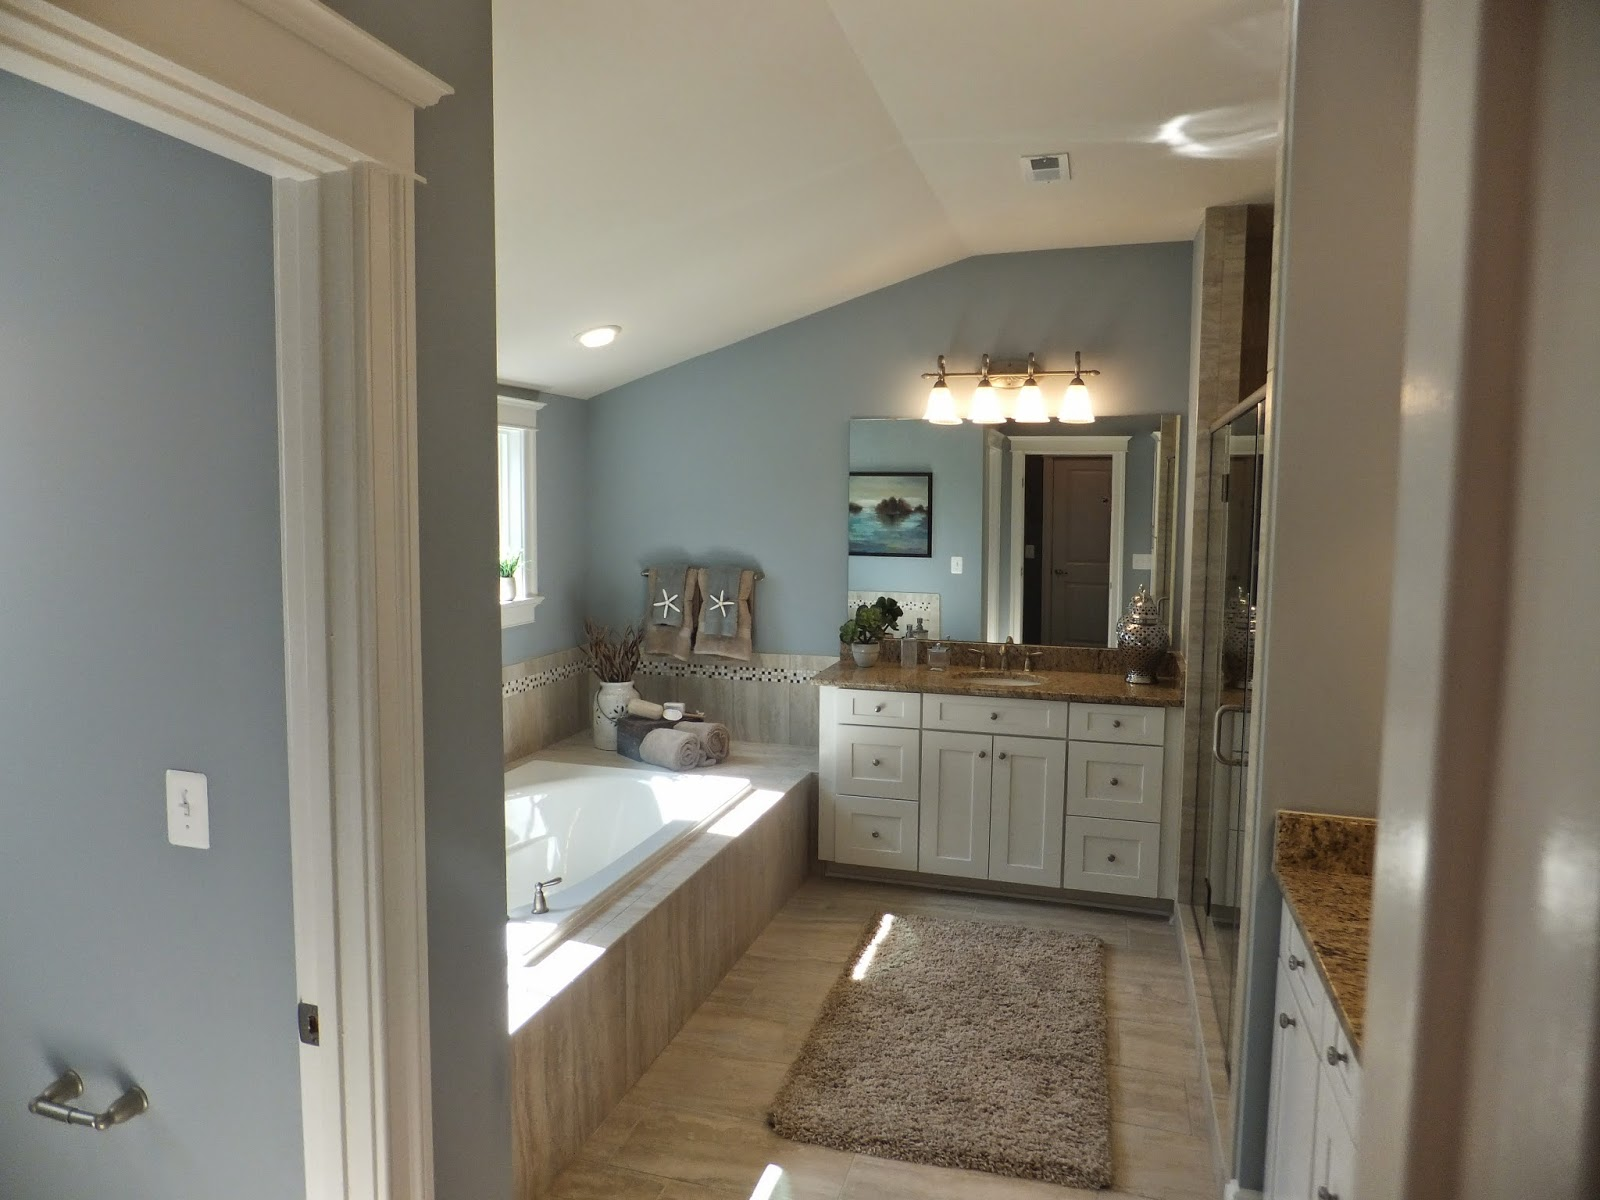 Model homes for sale in va